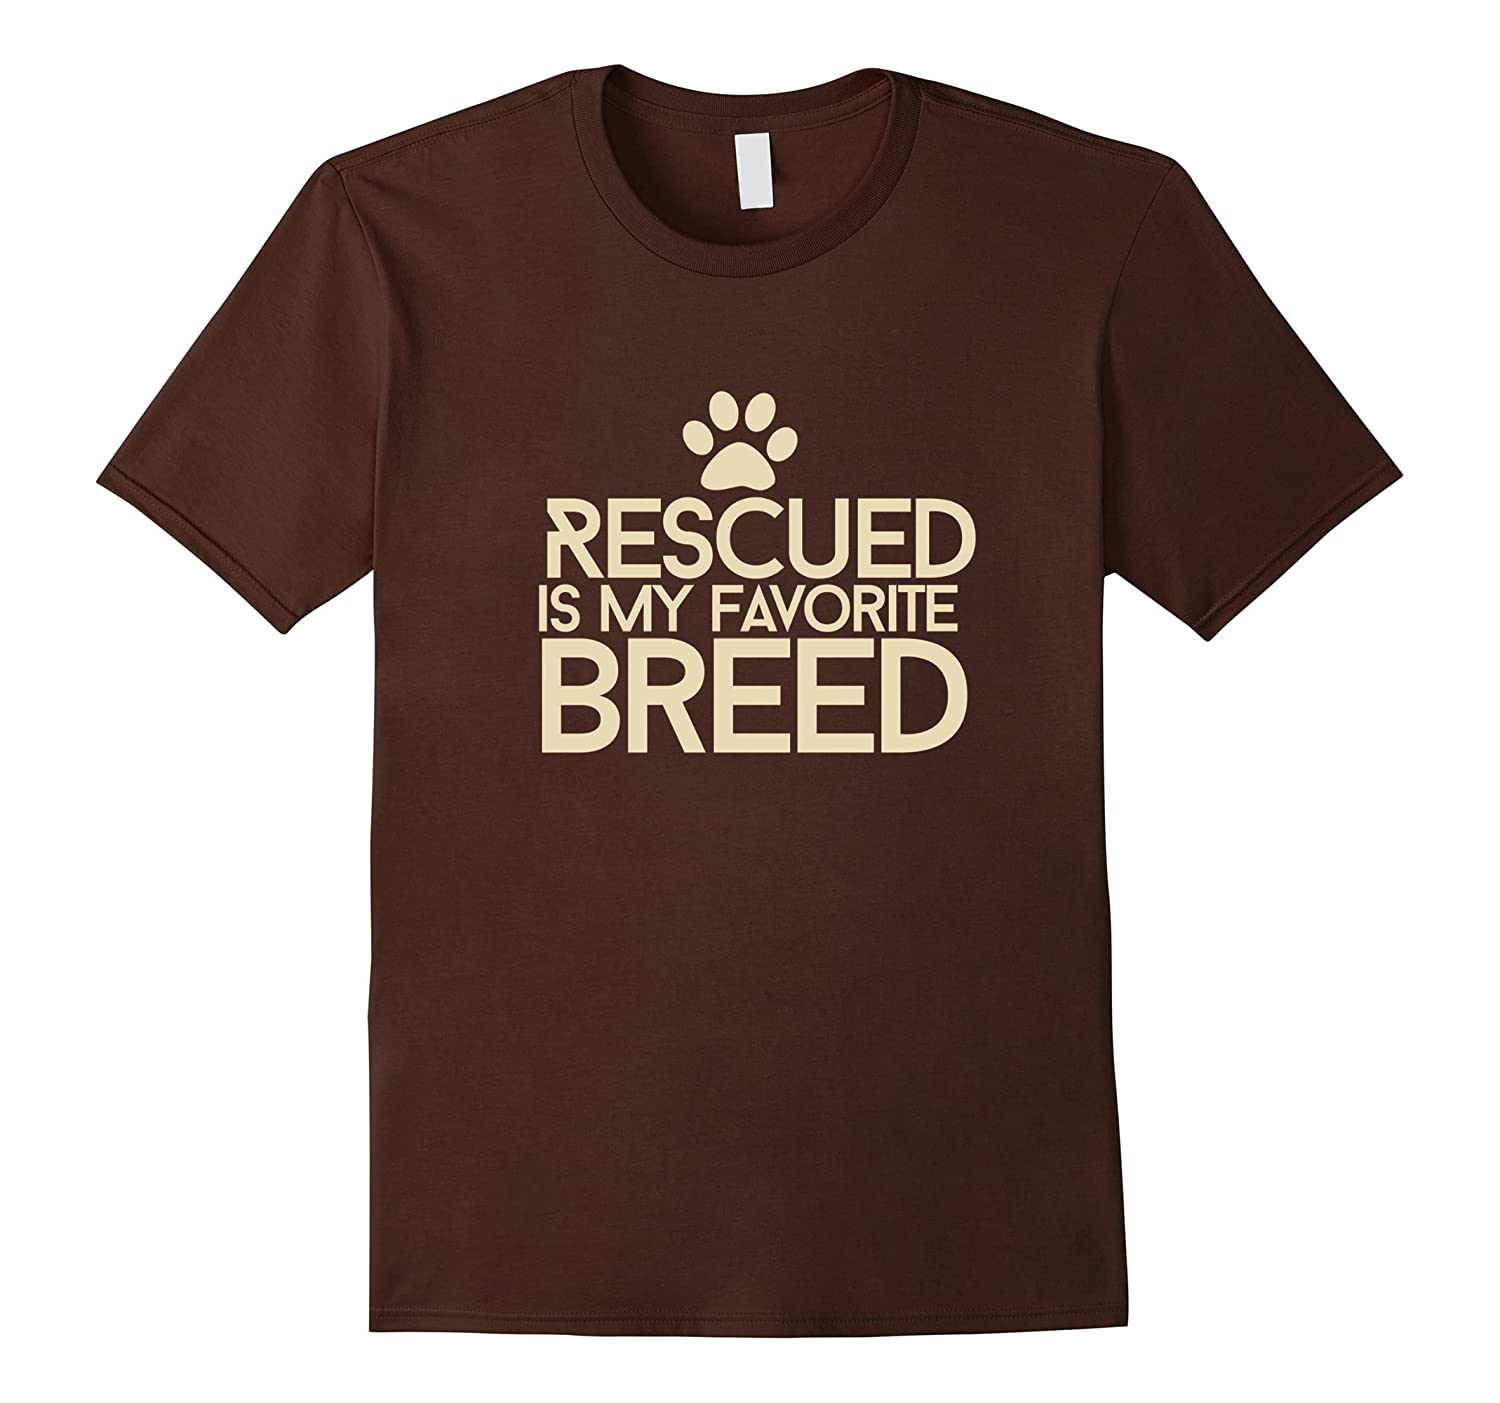 Rescued is my favorite breed shirt for fur baby parents-AZP